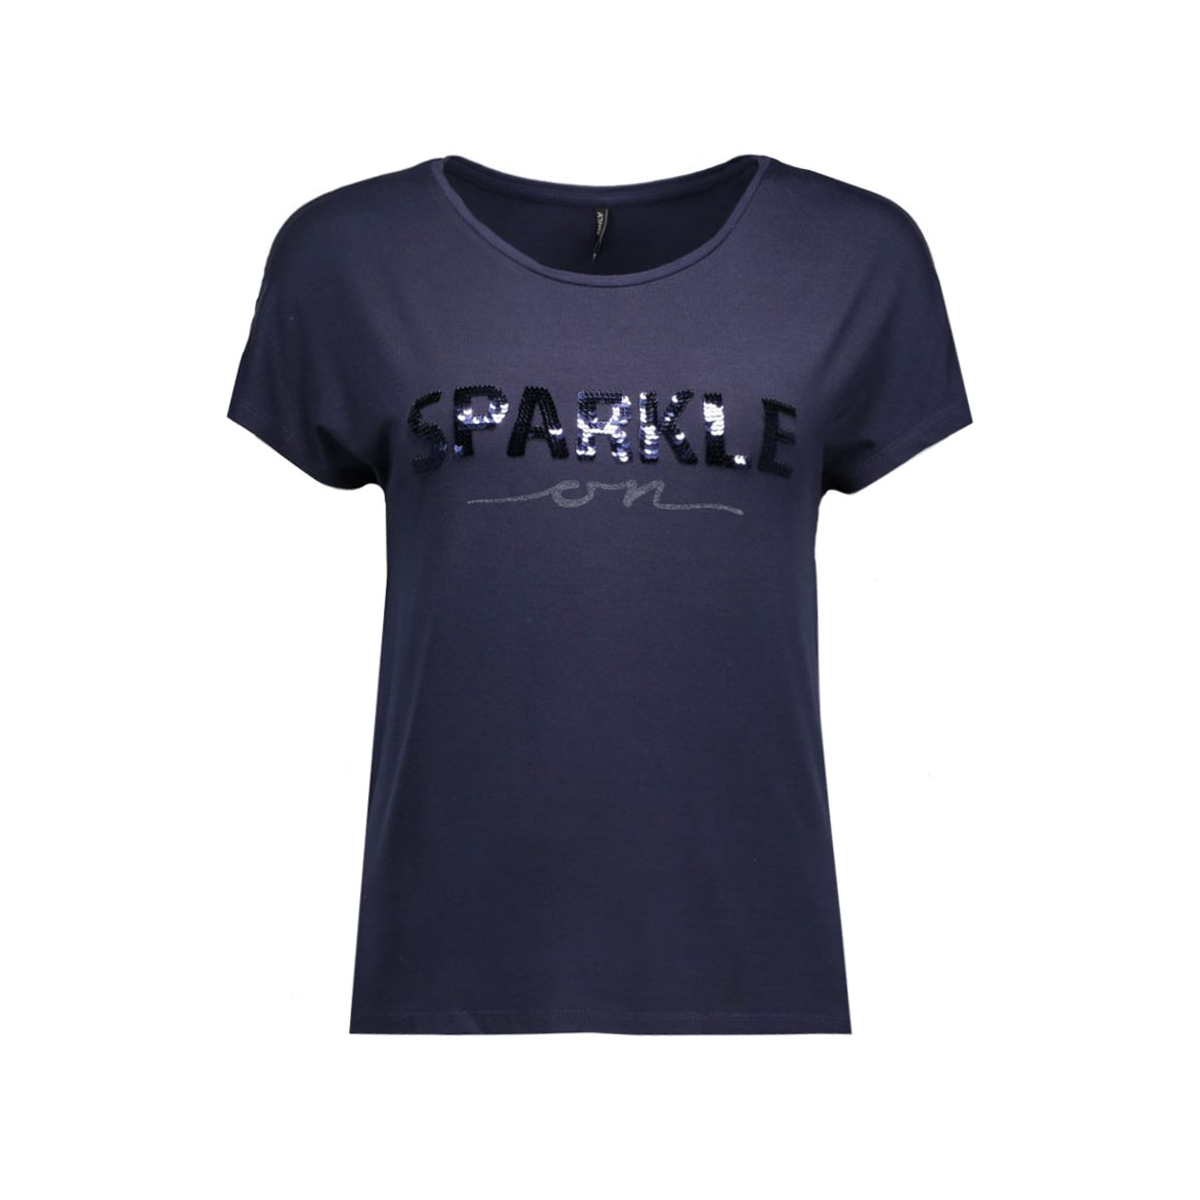 onlsally s/s a/sparkle top box ess 15124415 only t-shirt night sky/sparkle